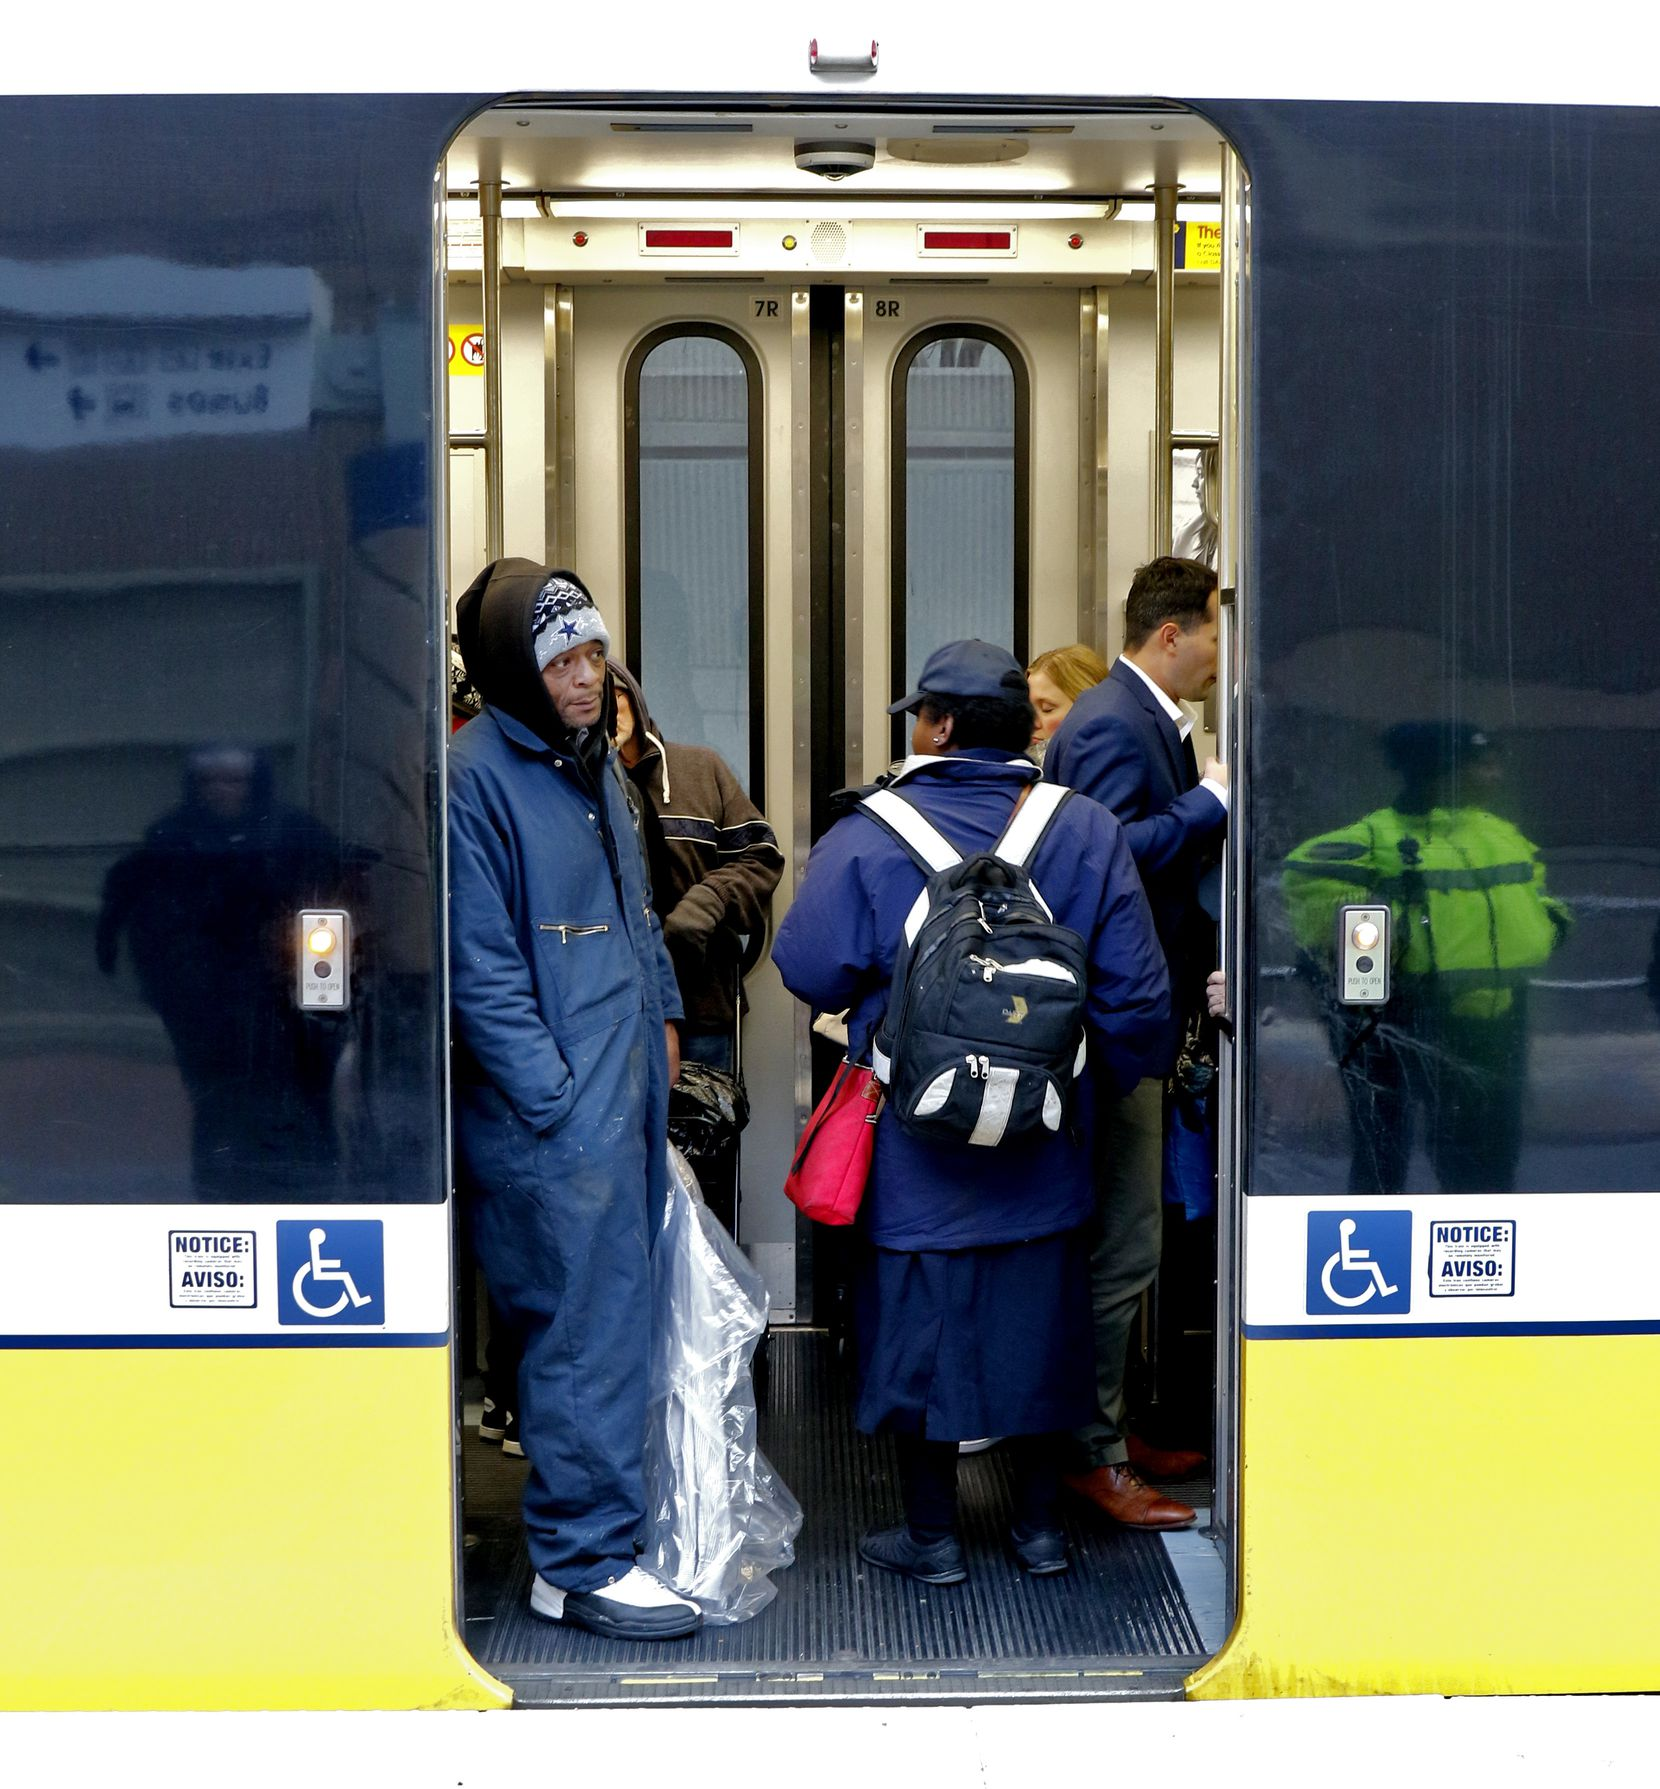 Passengers wait for DART train service at Mockingbird Station in Dallas, Texas. Problems with overhead power lines temporarily suspended train service in downtown Dallas the afternoon of Tuesday, Nov. 12.